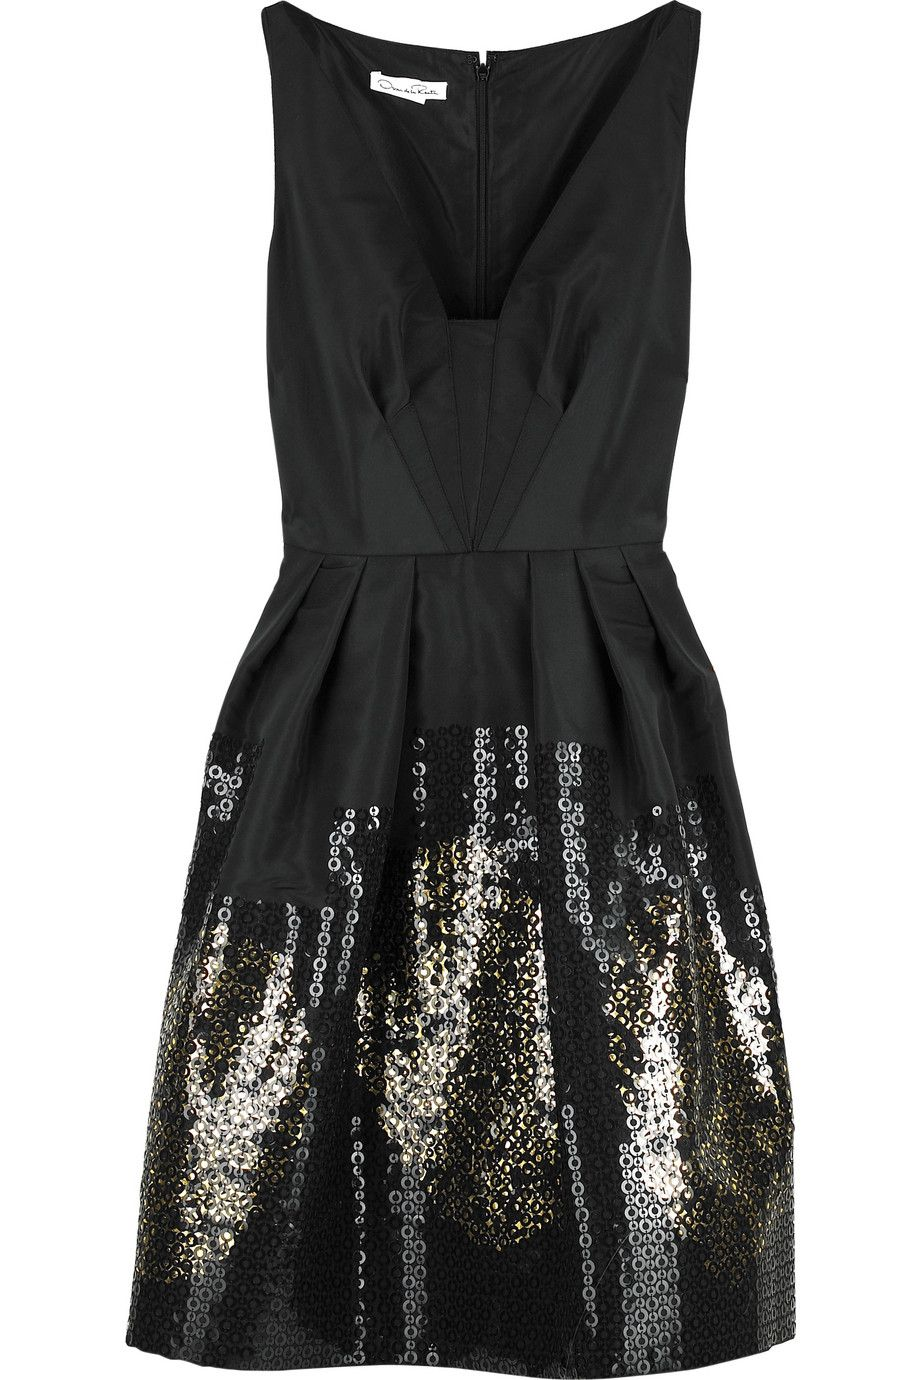 simple, yet the appliqued sequins do so much.